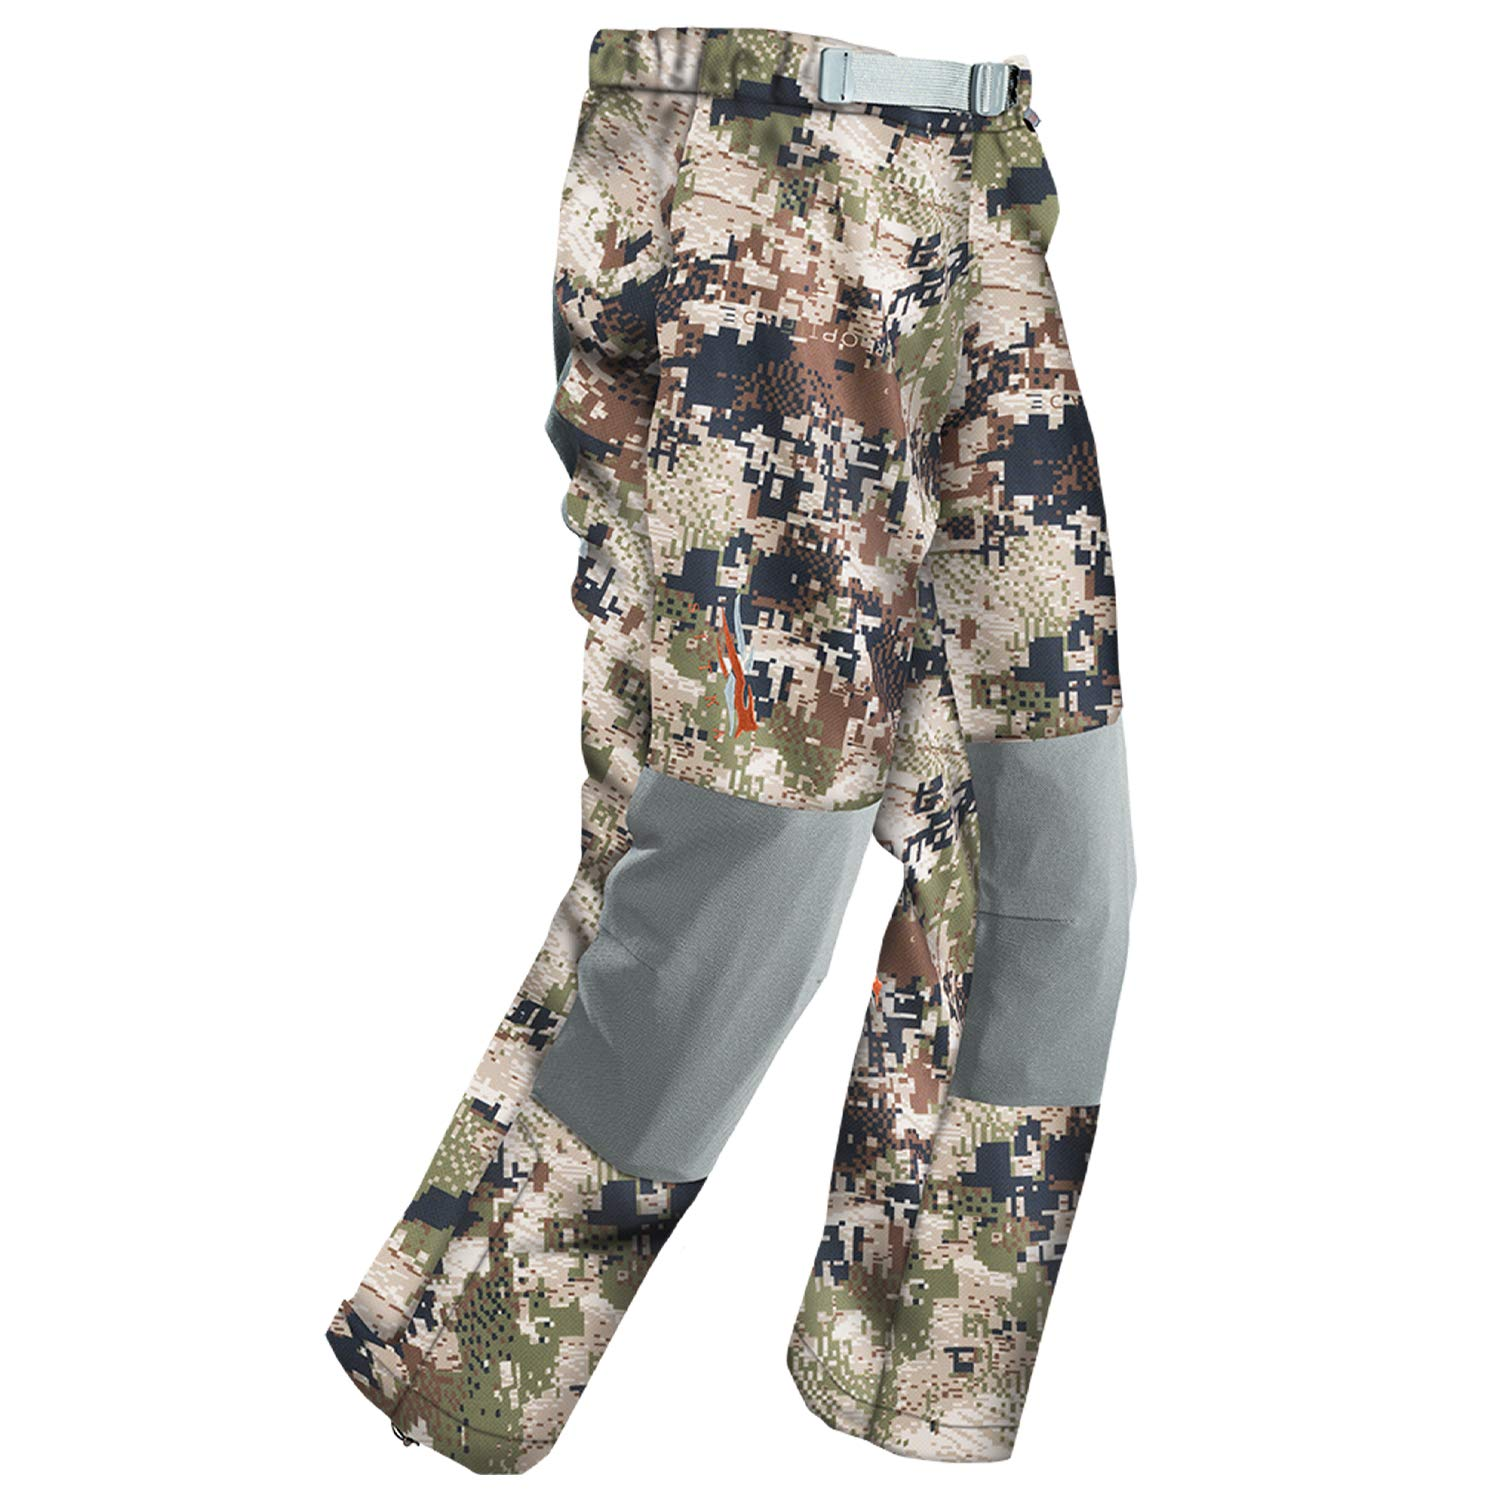 SITKA Gear New for 2019 Youth Cyclone Pant Optifade Subalpine Youth Medium by SITKA